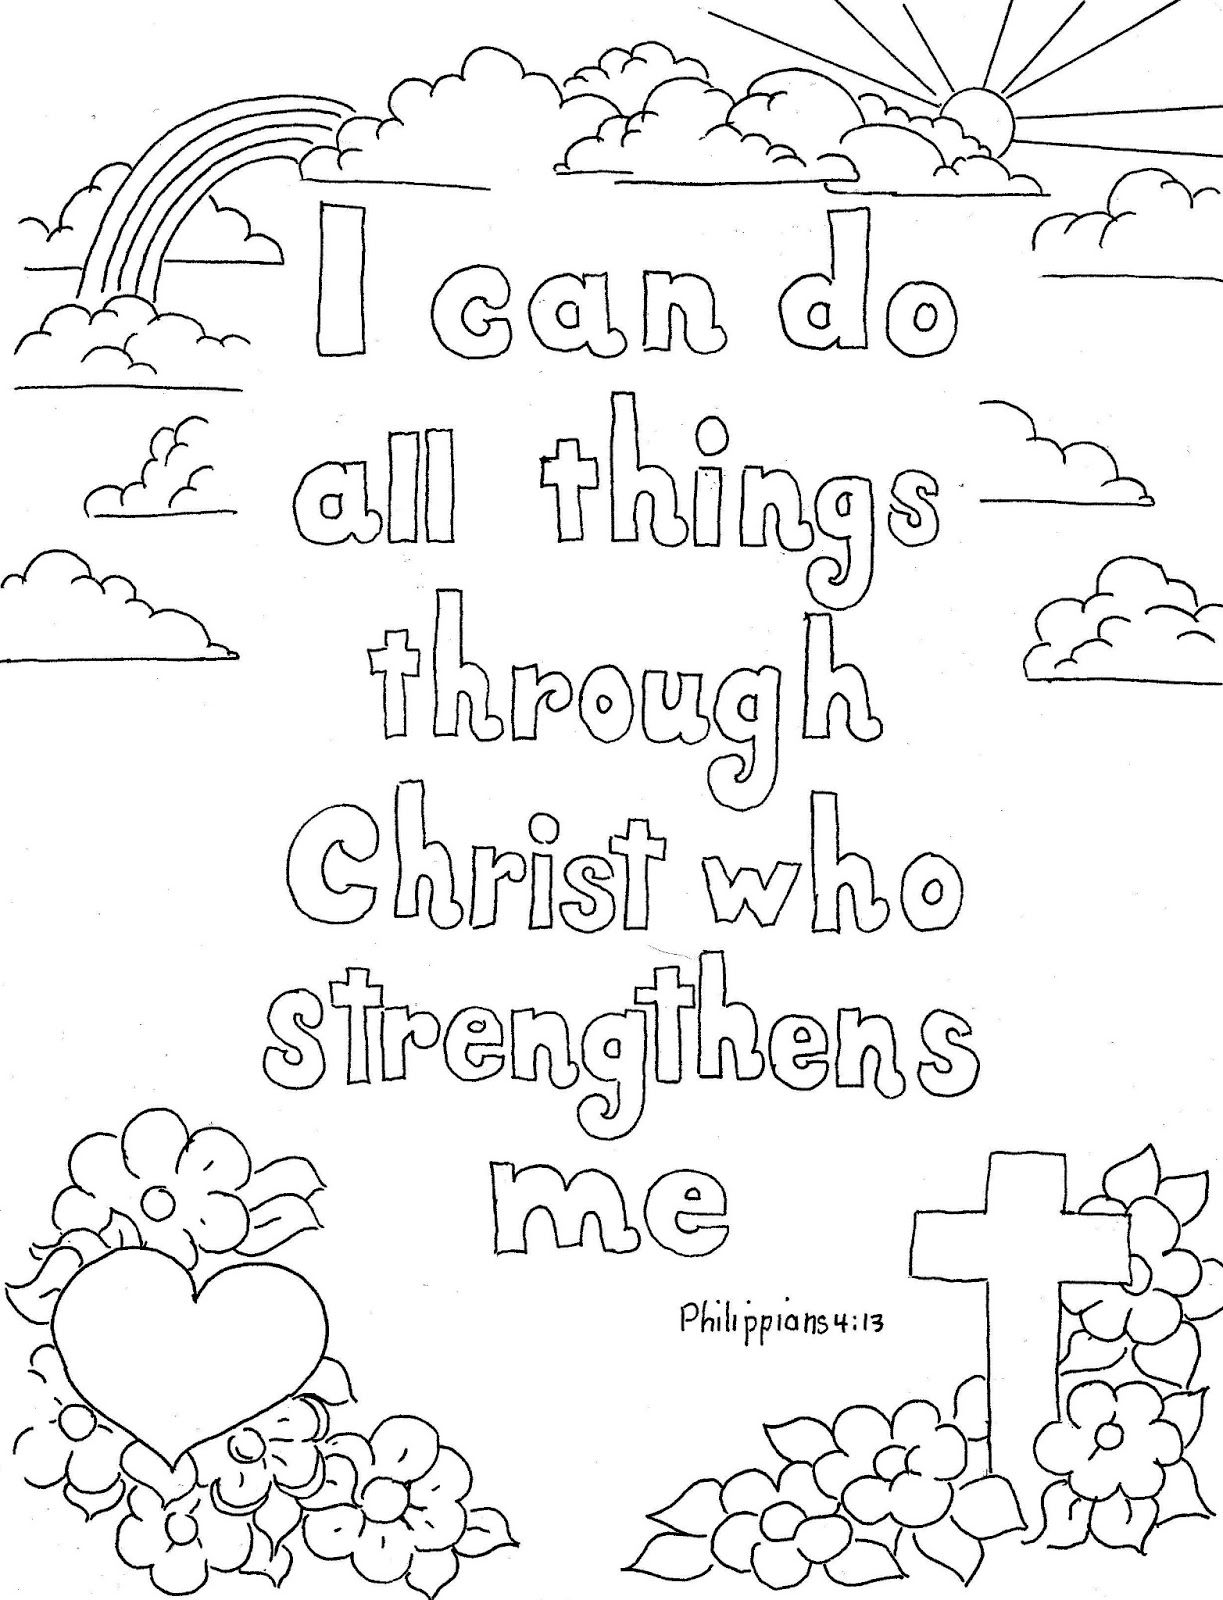 Childrens bible stories and coloring pages - Bible Coloring Page